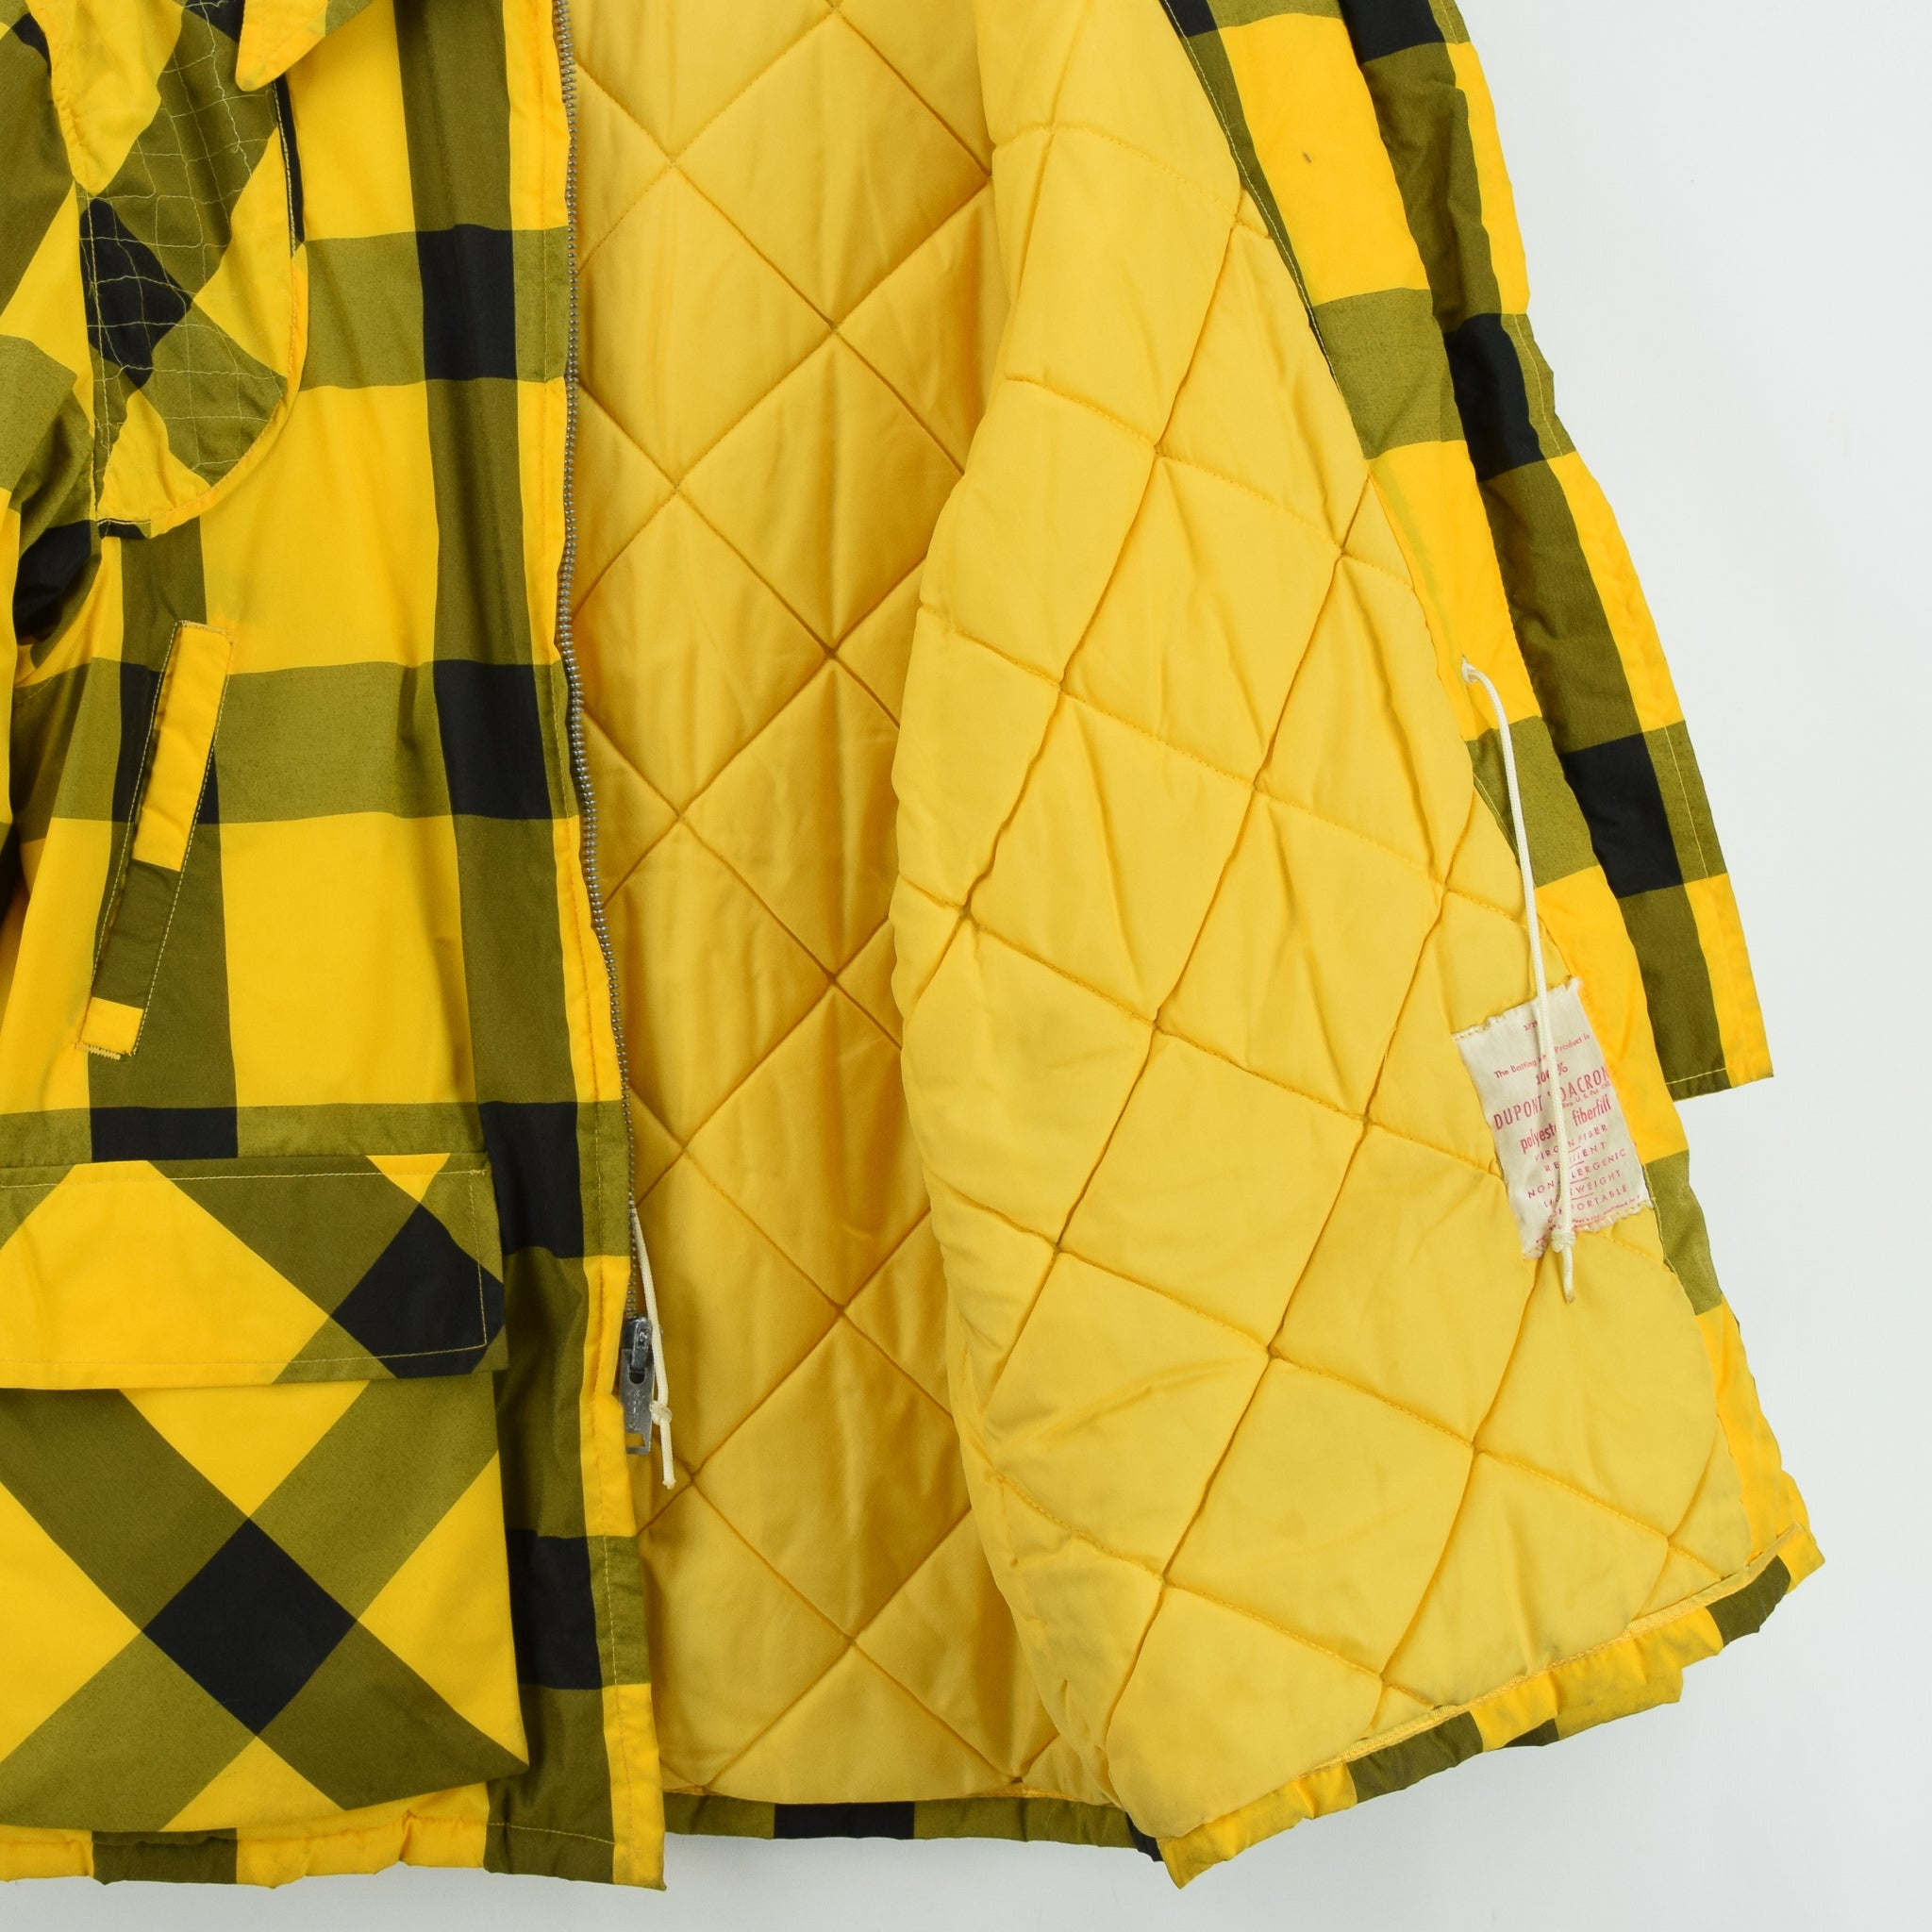 Vintage Sears Plaid Check Yellow Hunting Style Jacket Made in USA L quilt lining